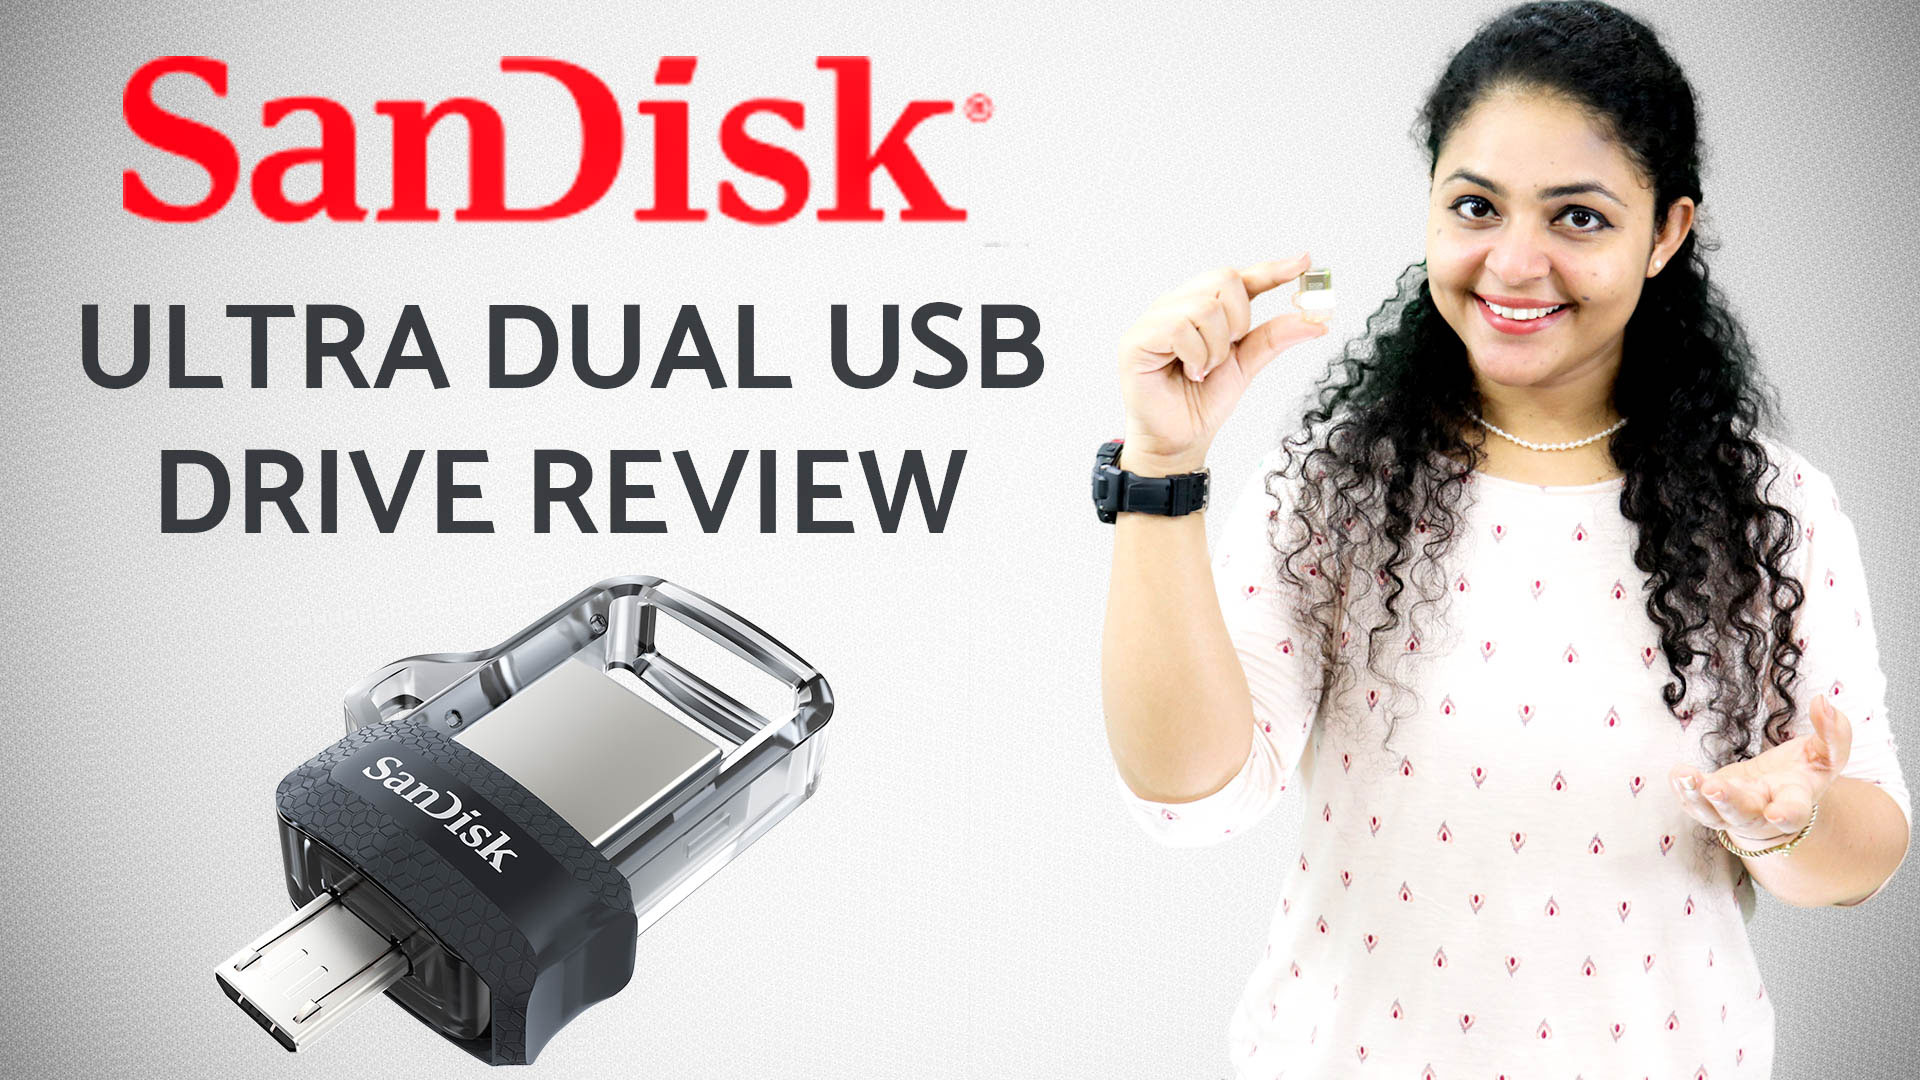 Sandisk Ultra Dual Usb Drive 30 32gb Review Otg M3 16gb 3